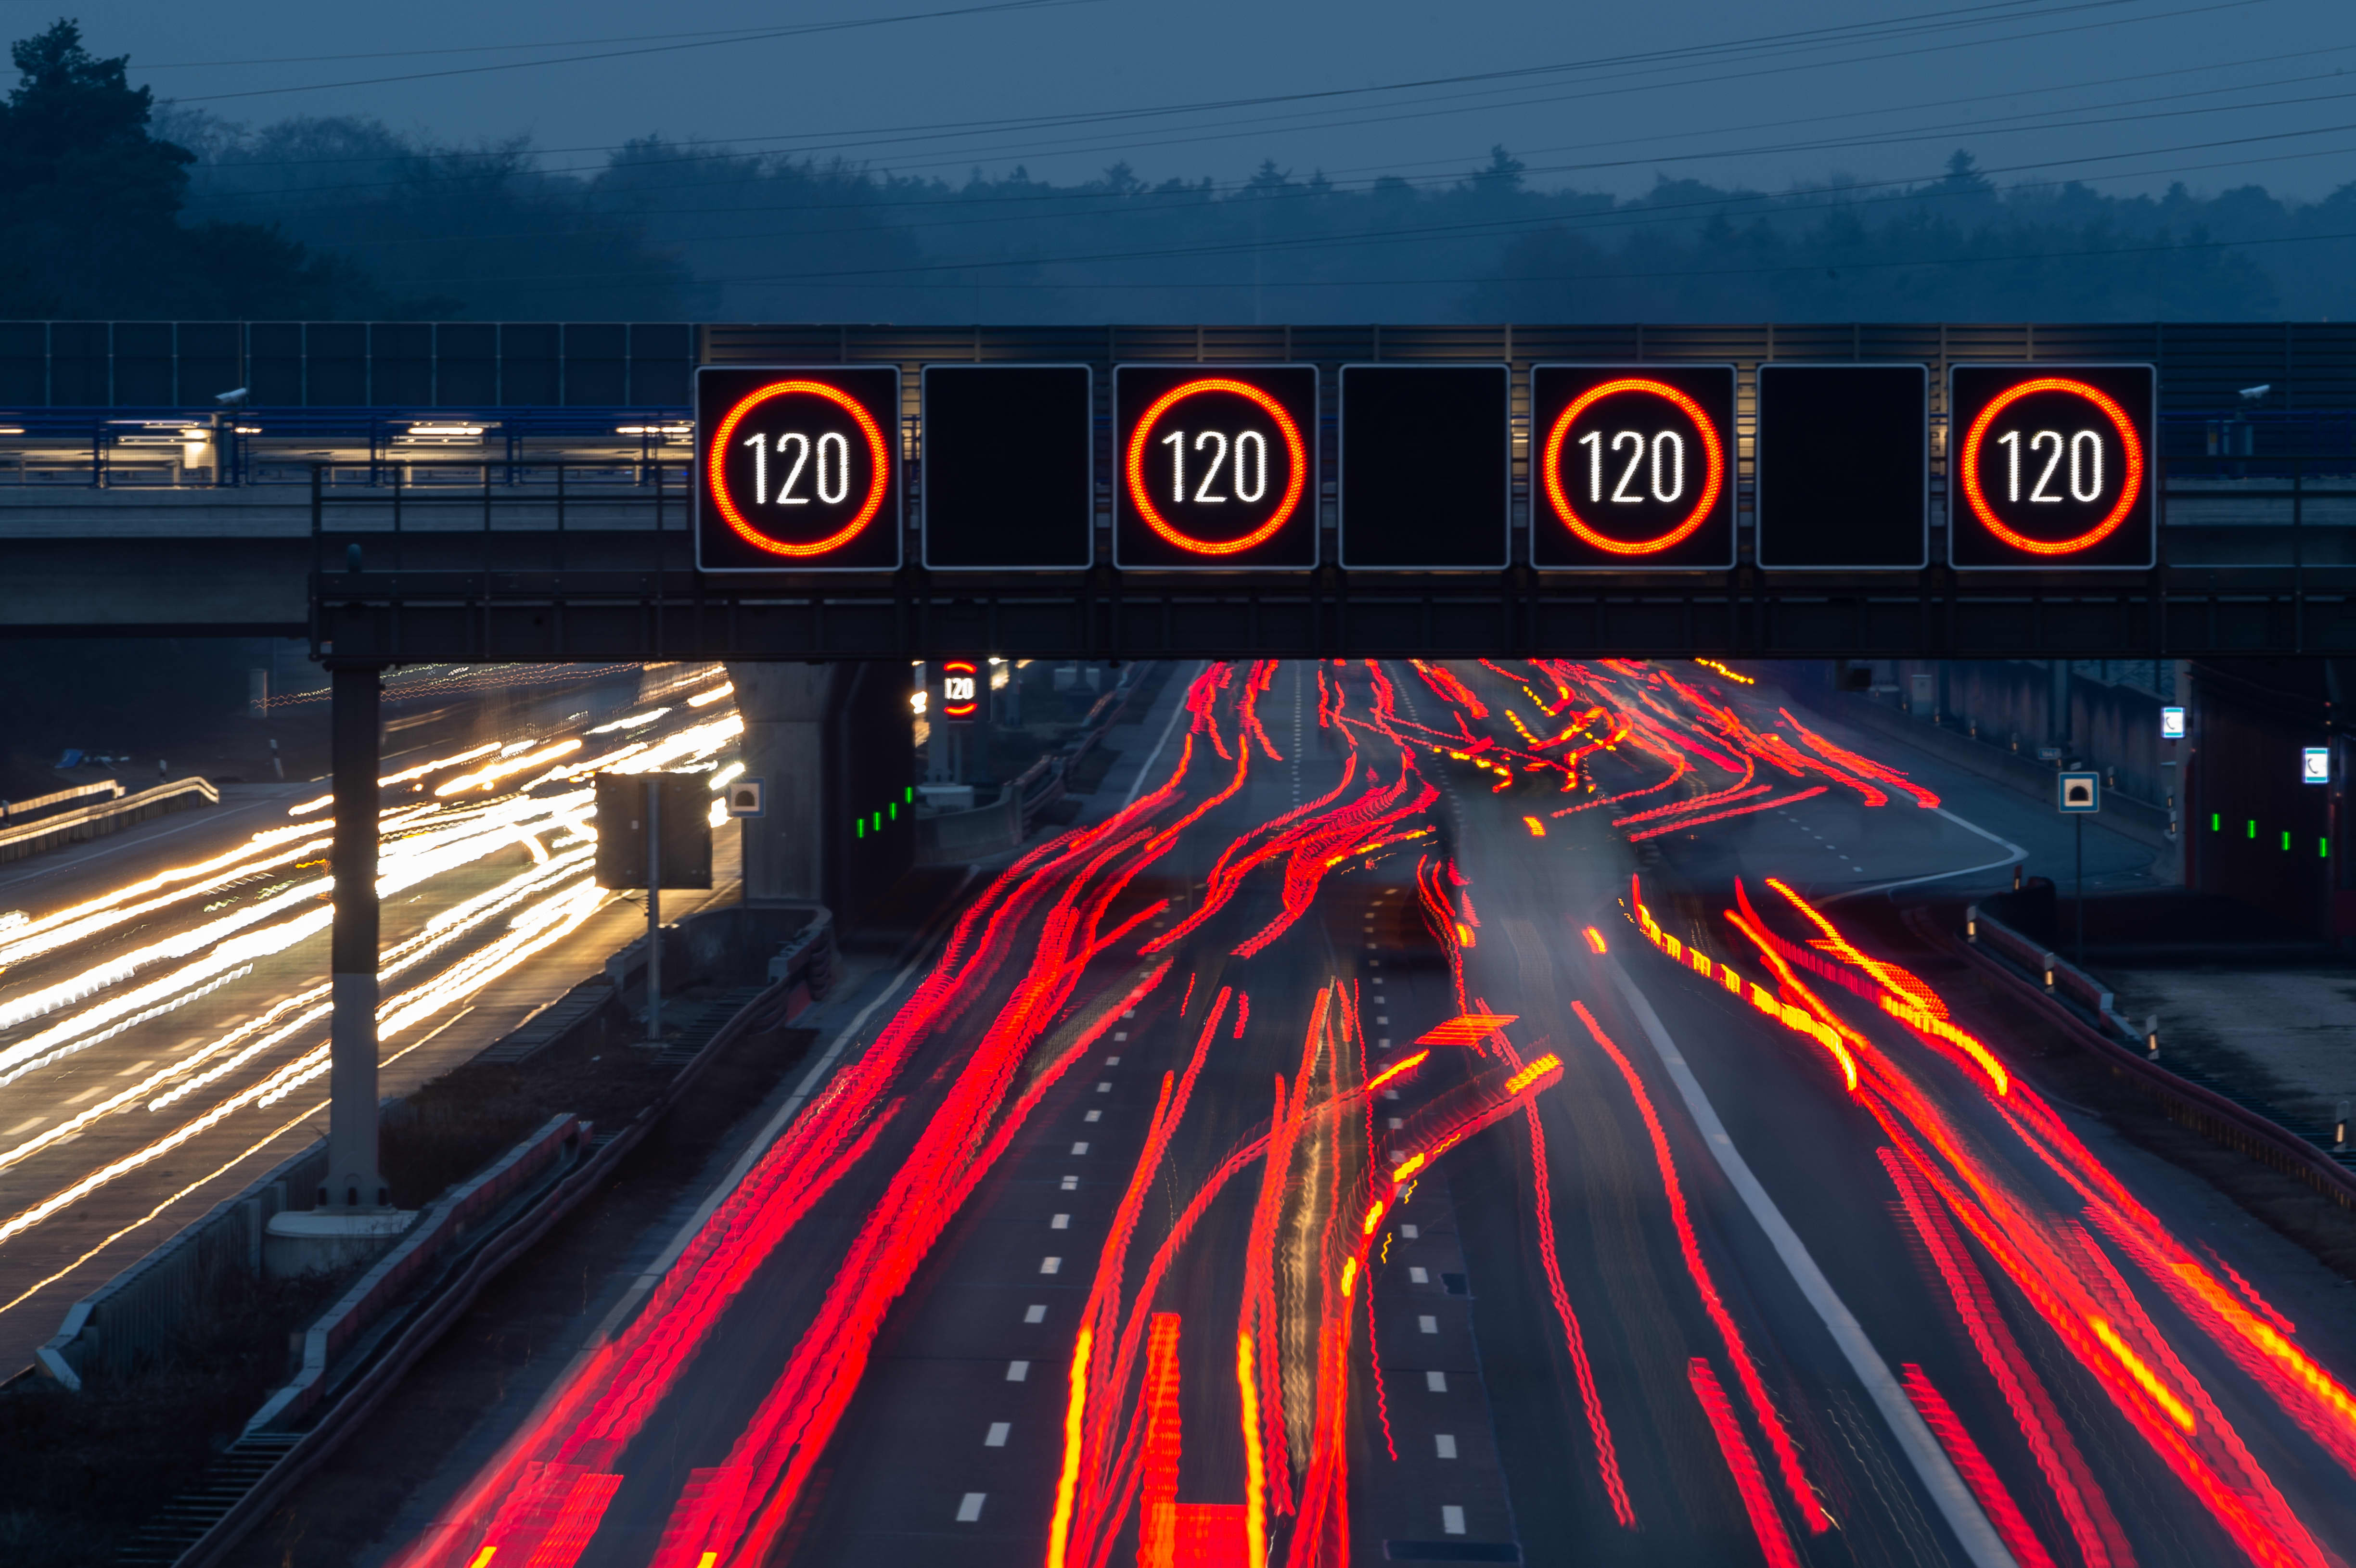 Cars in Europe could be fitted with technology to stop speeding